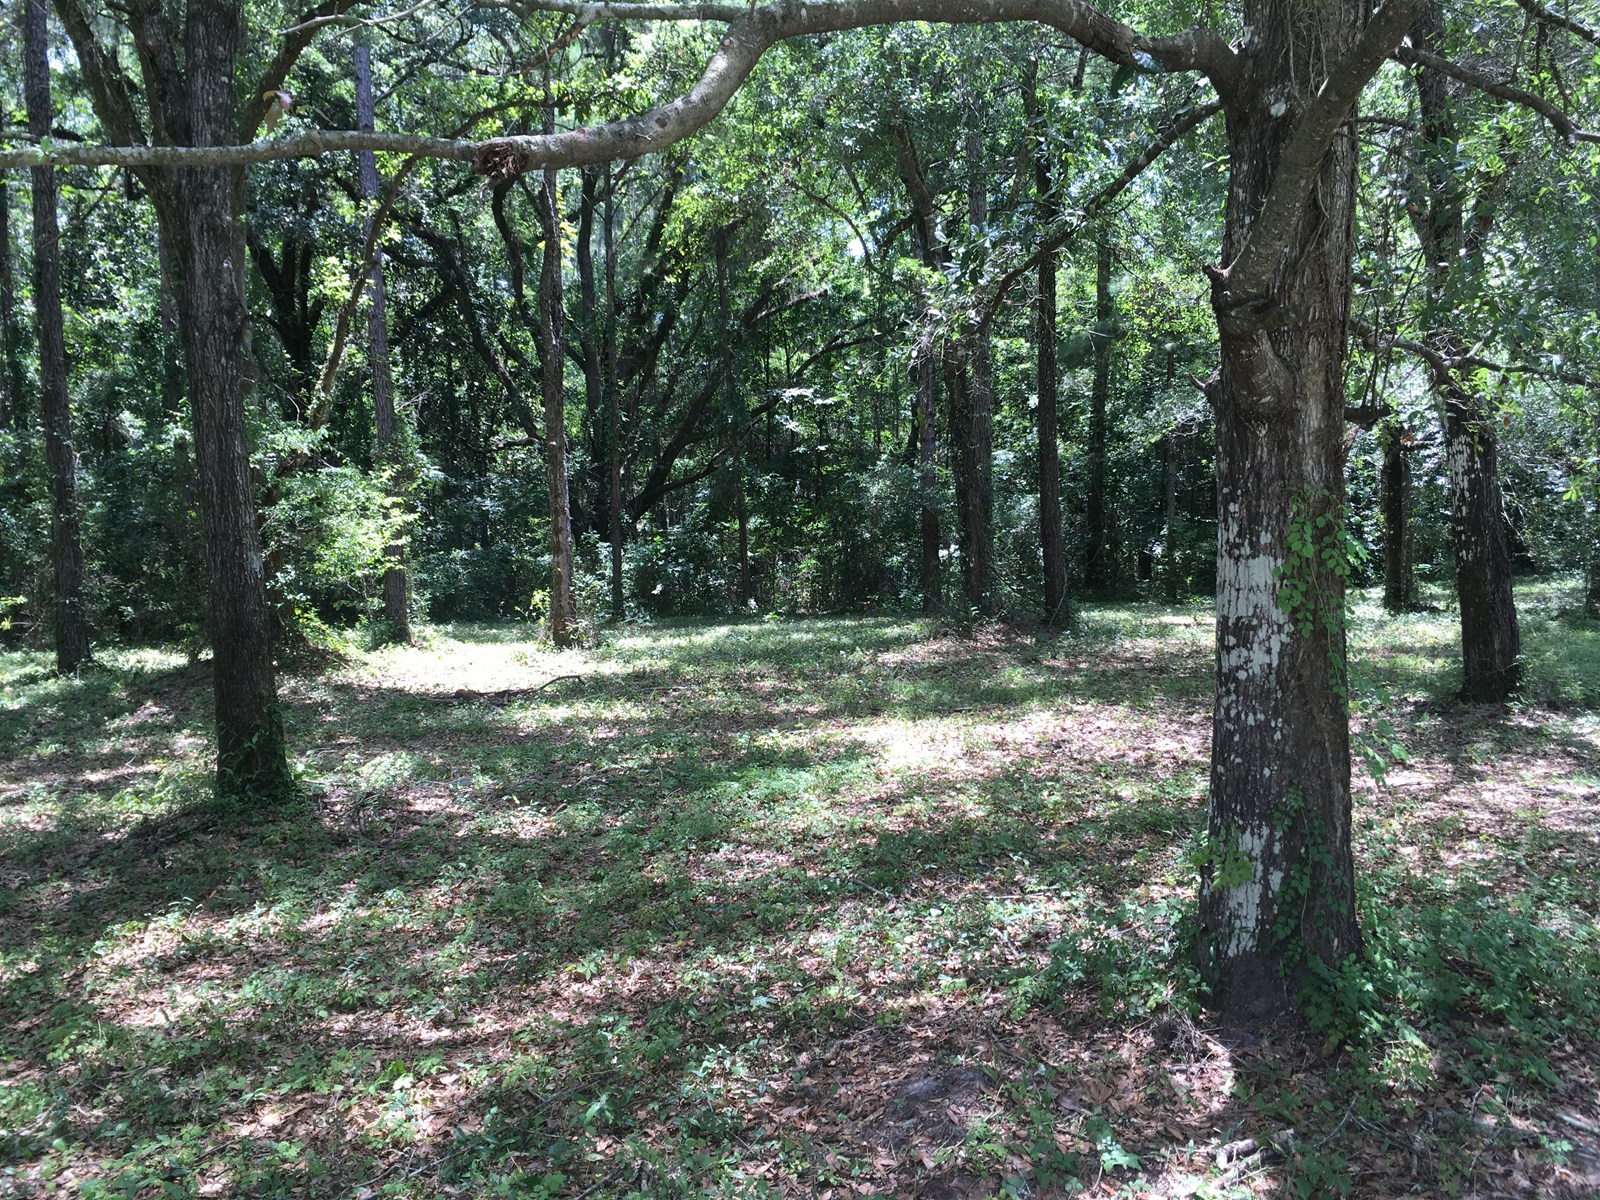 Land residential for sale in Monticello, Florida